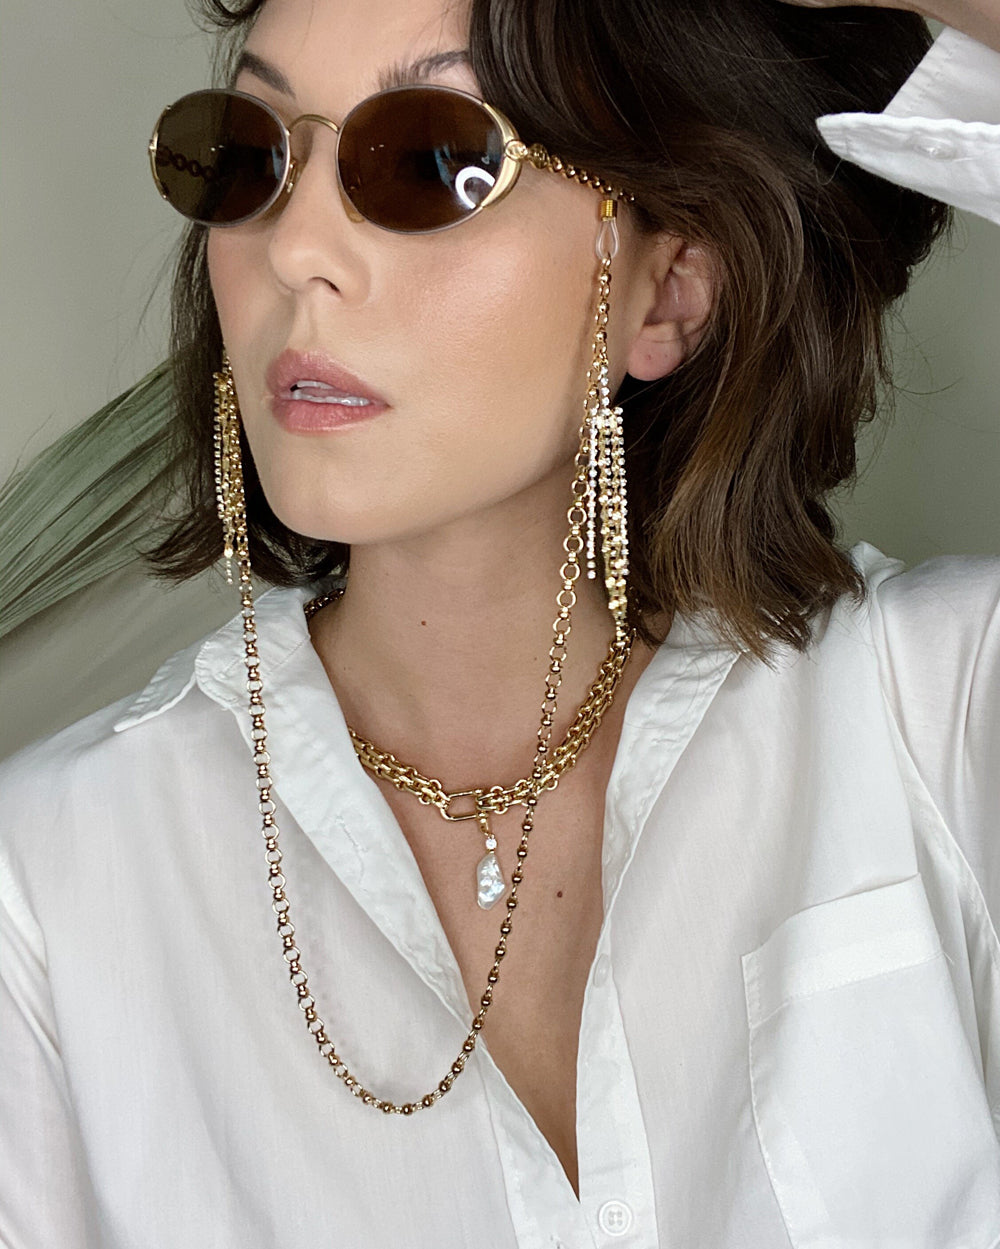 MILDRED Sunglass Chain